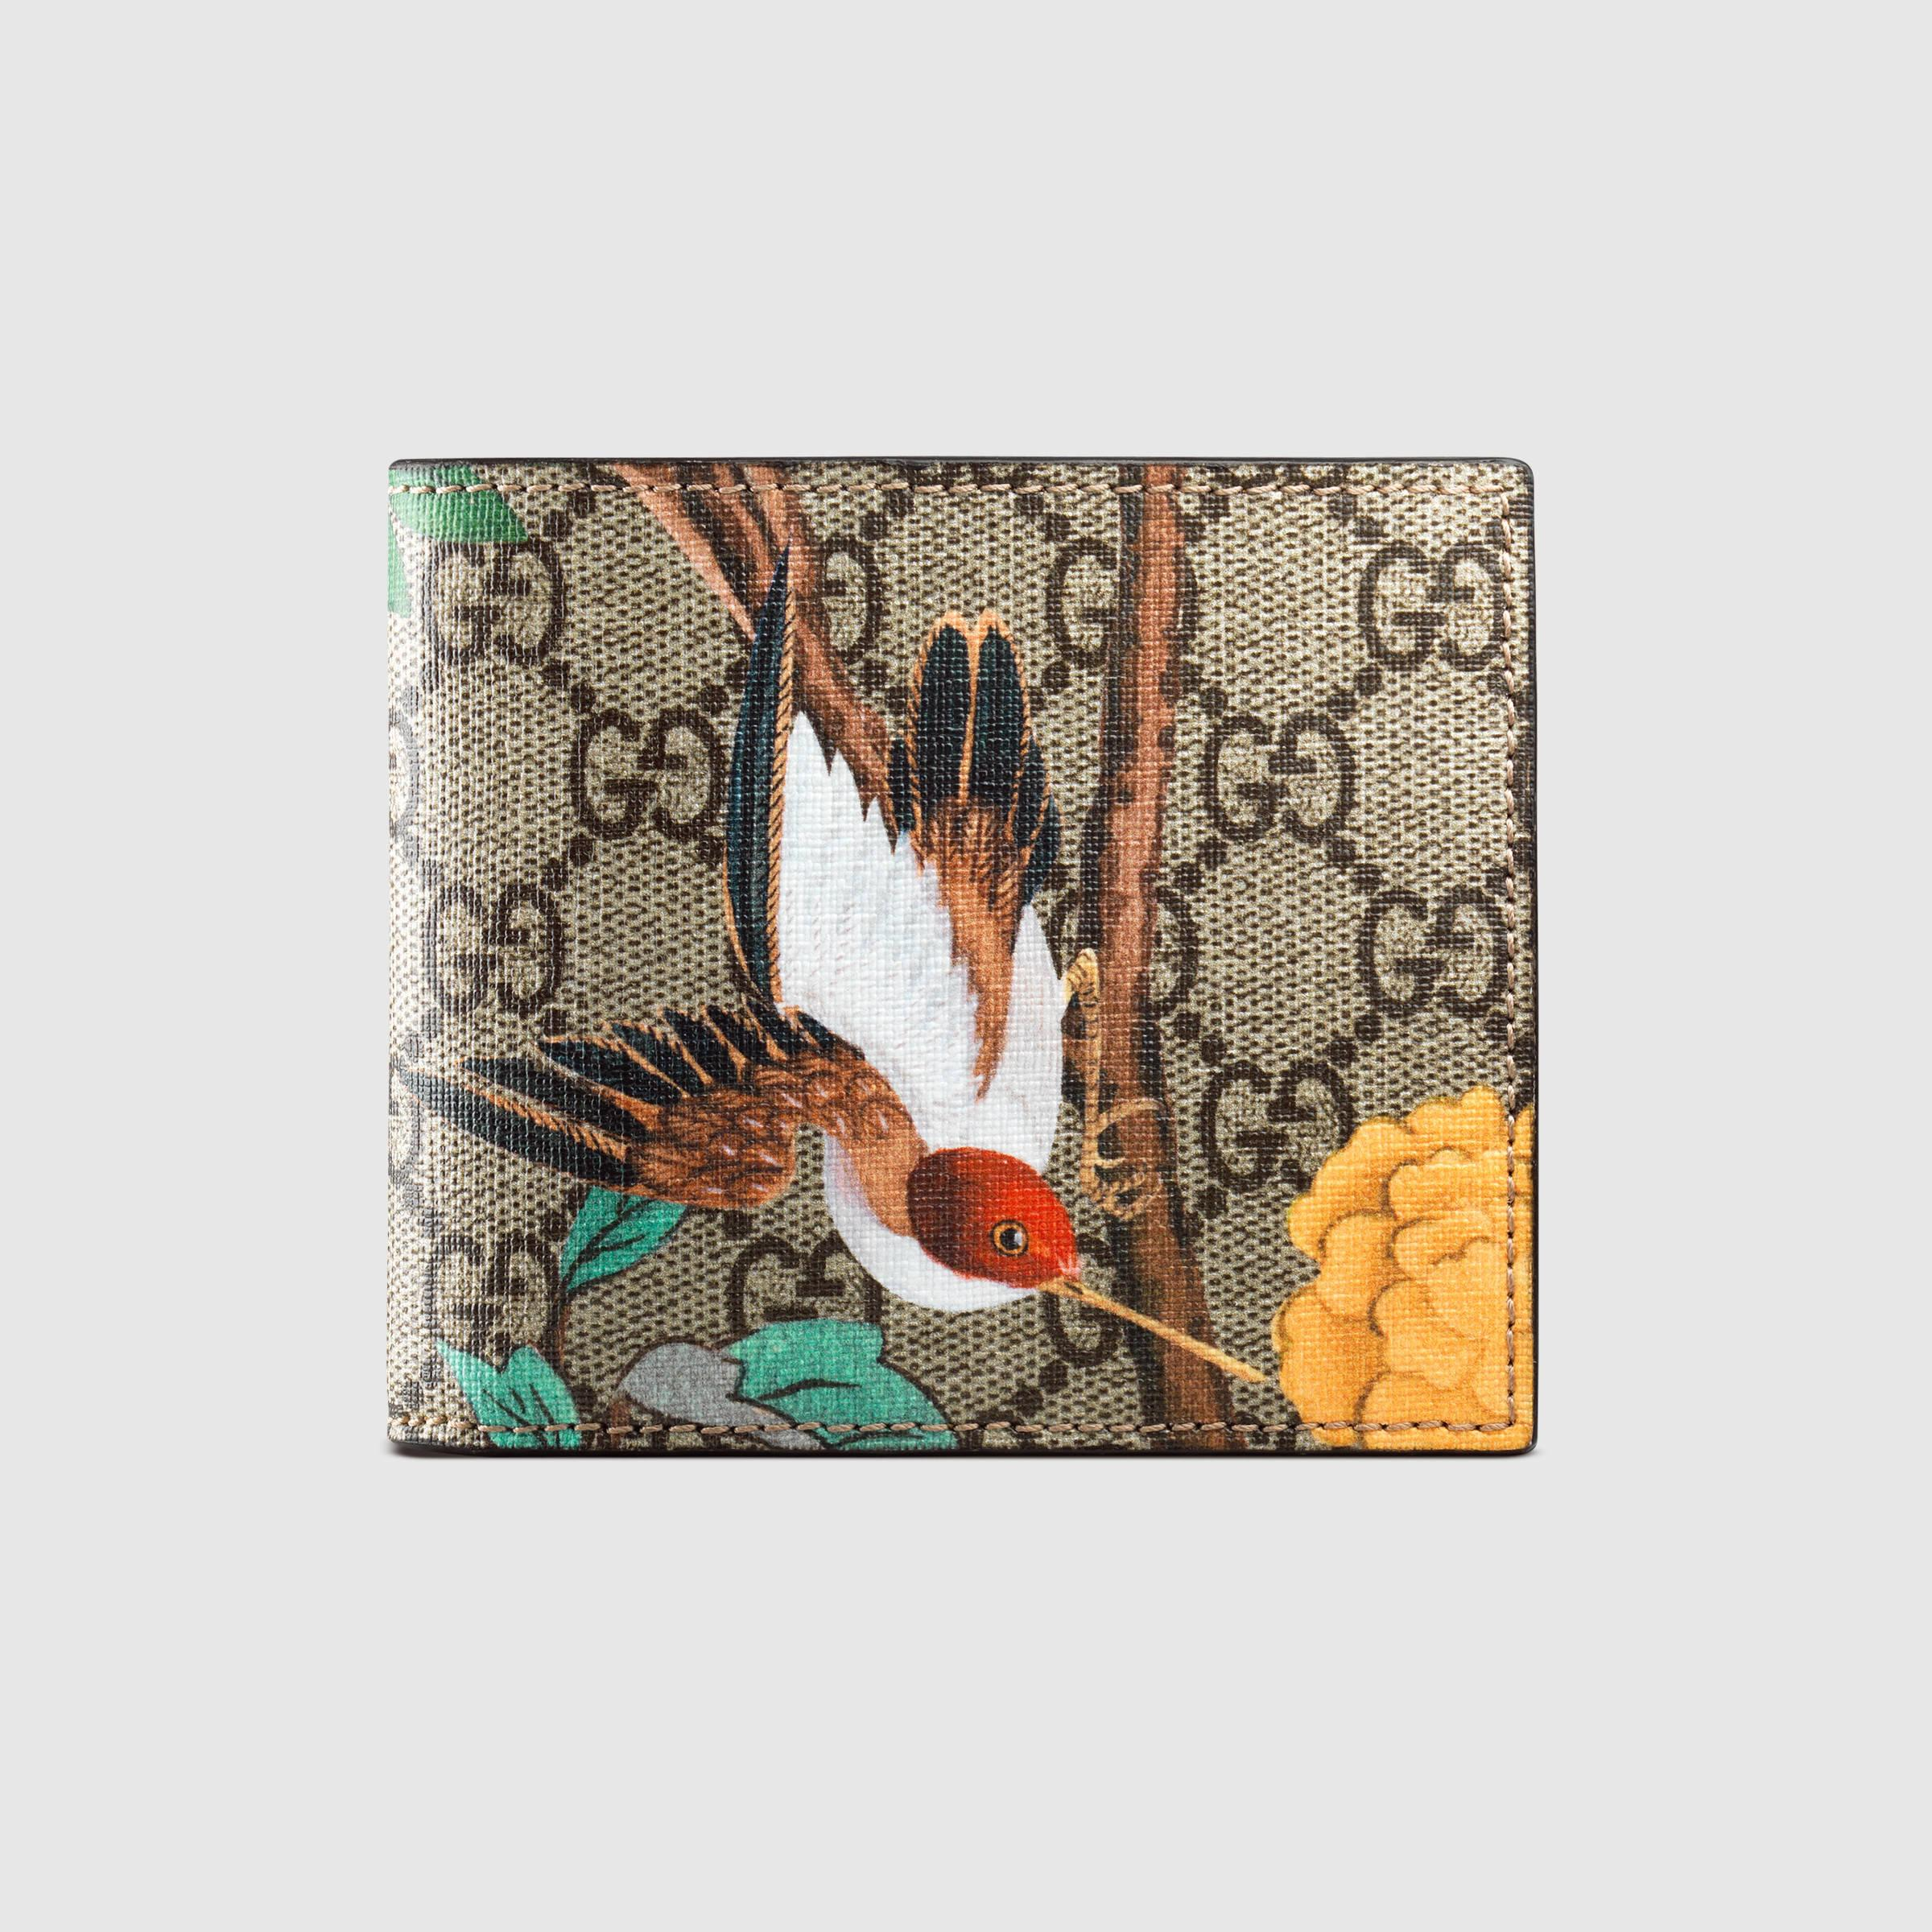 b847628c5c58 Gucci Tian Gg Supreme Wallet in Brown for Men - Lyst